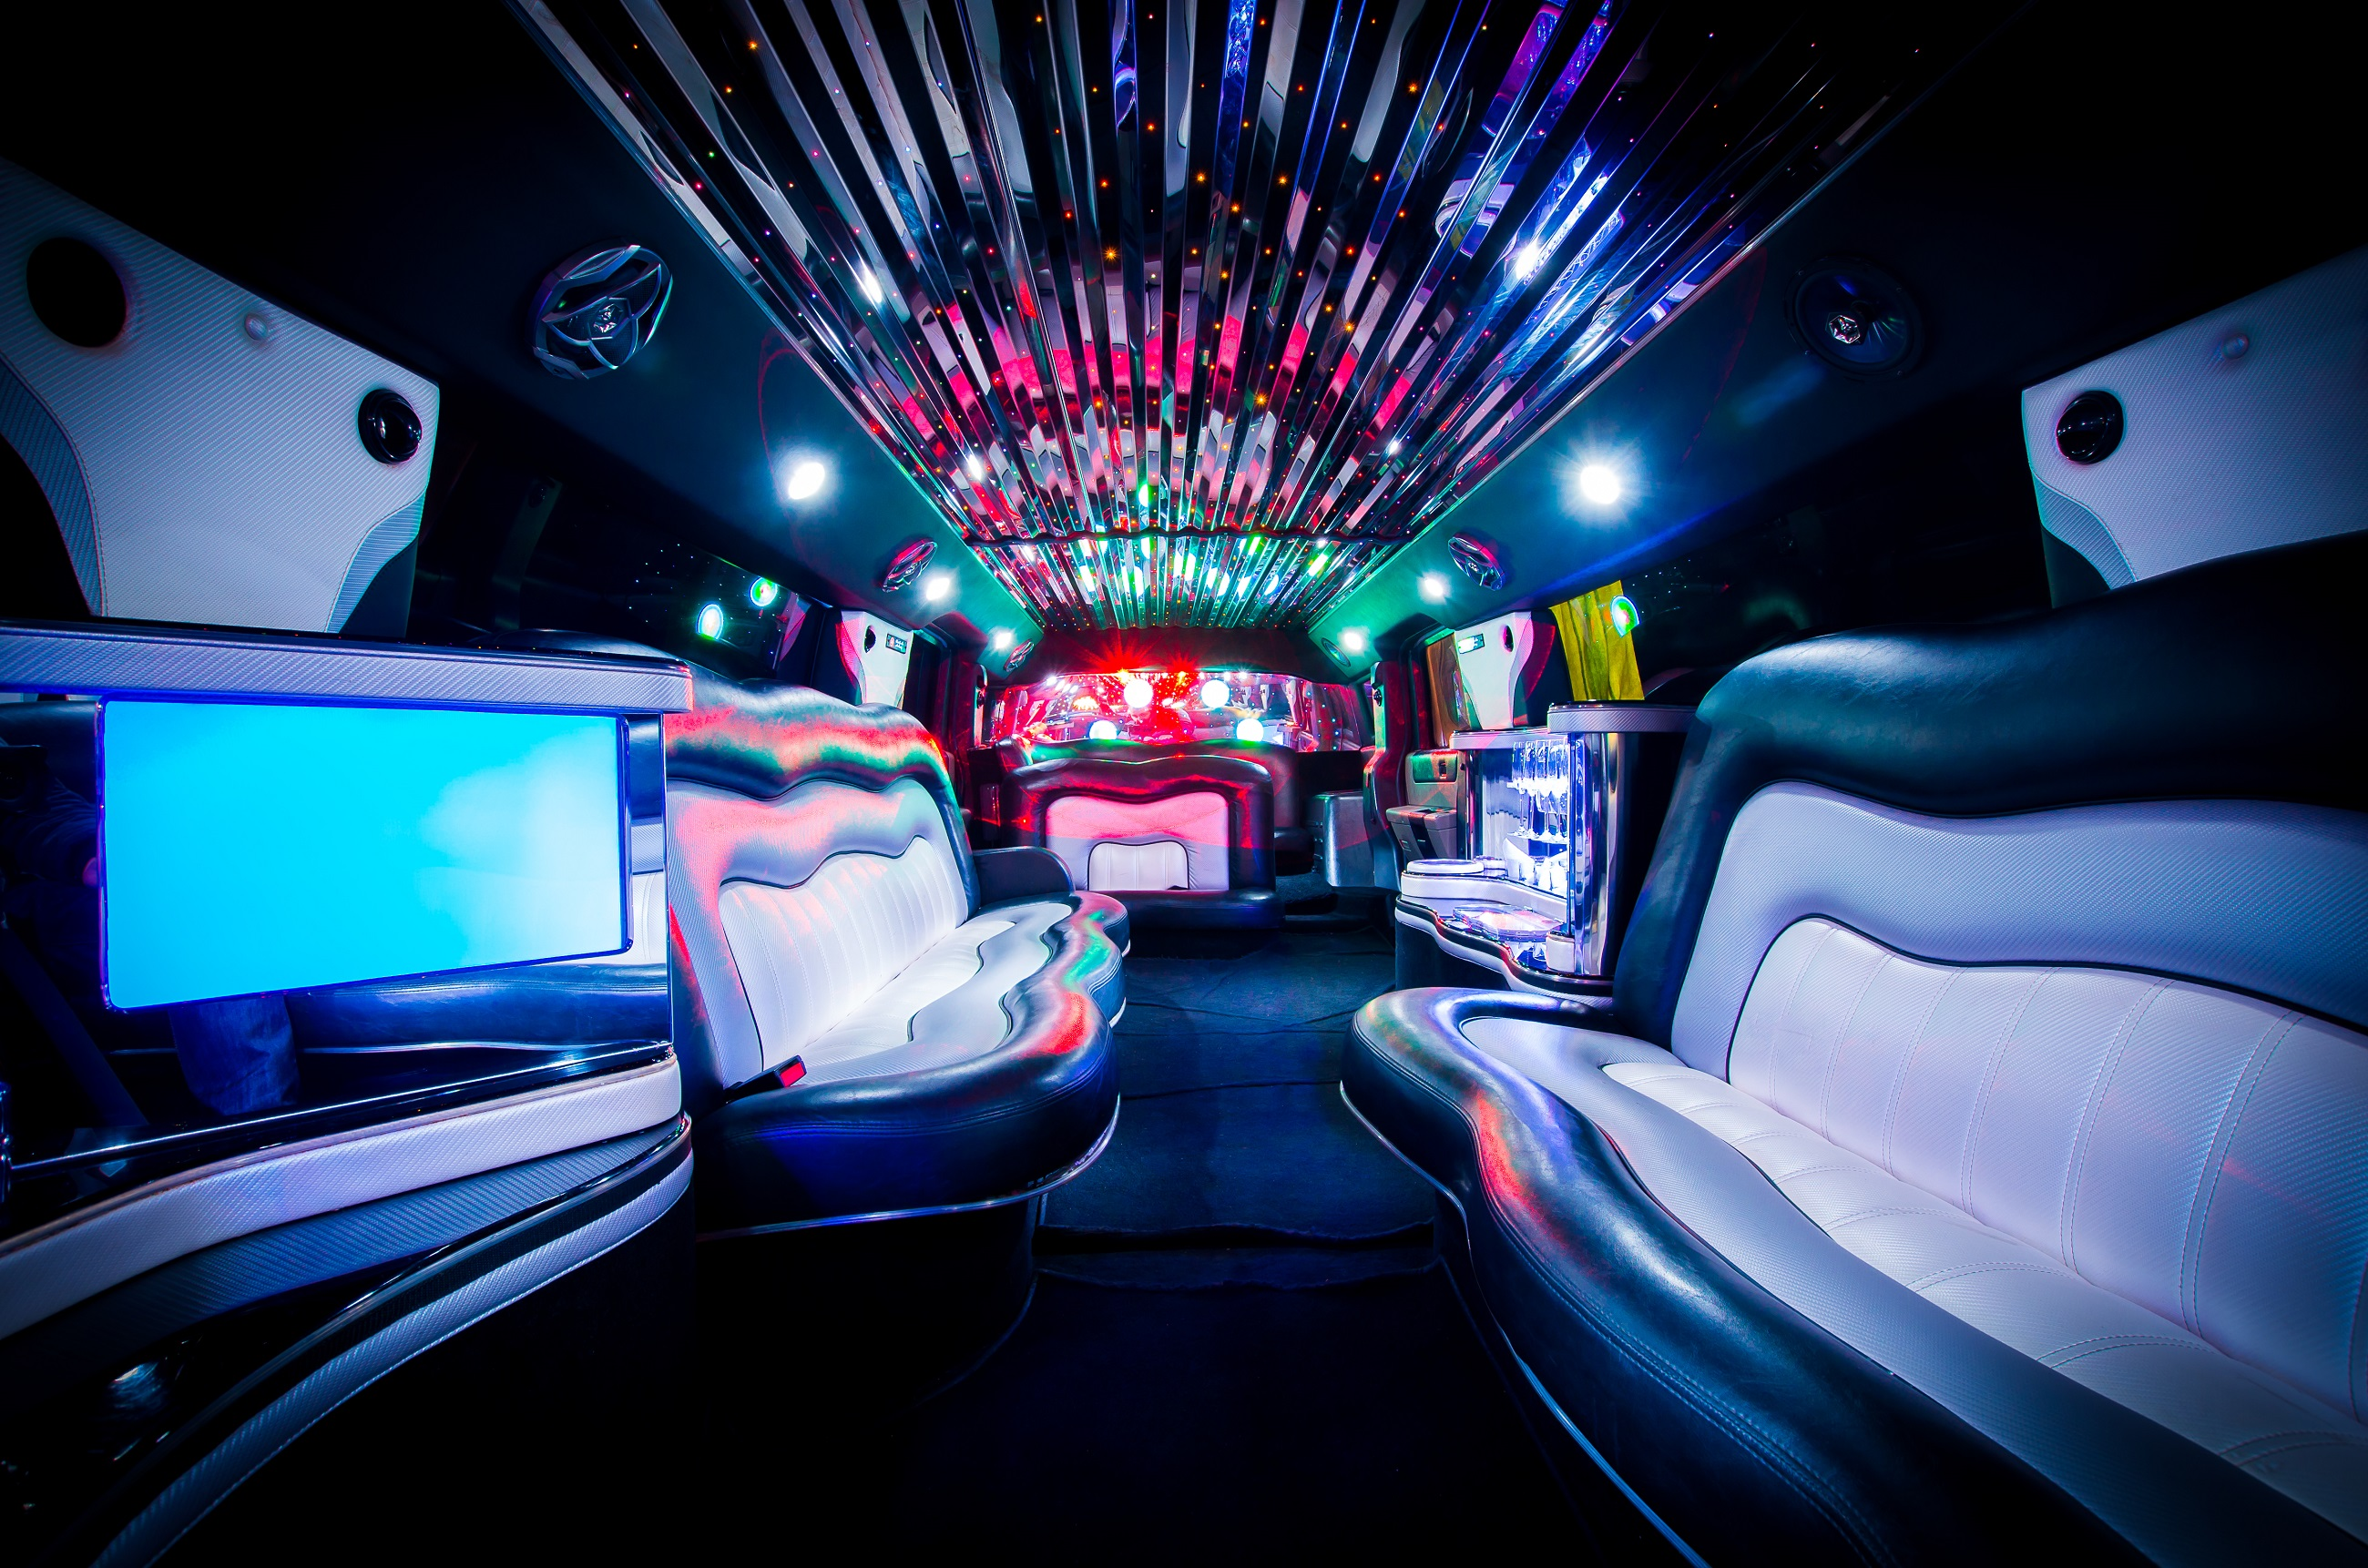 hummer h2 stretchlimousine in koblenz stretchlimousinen partybus und oldtimer verleih. Black Bedroom Furniture Sets. Home Design Ideas